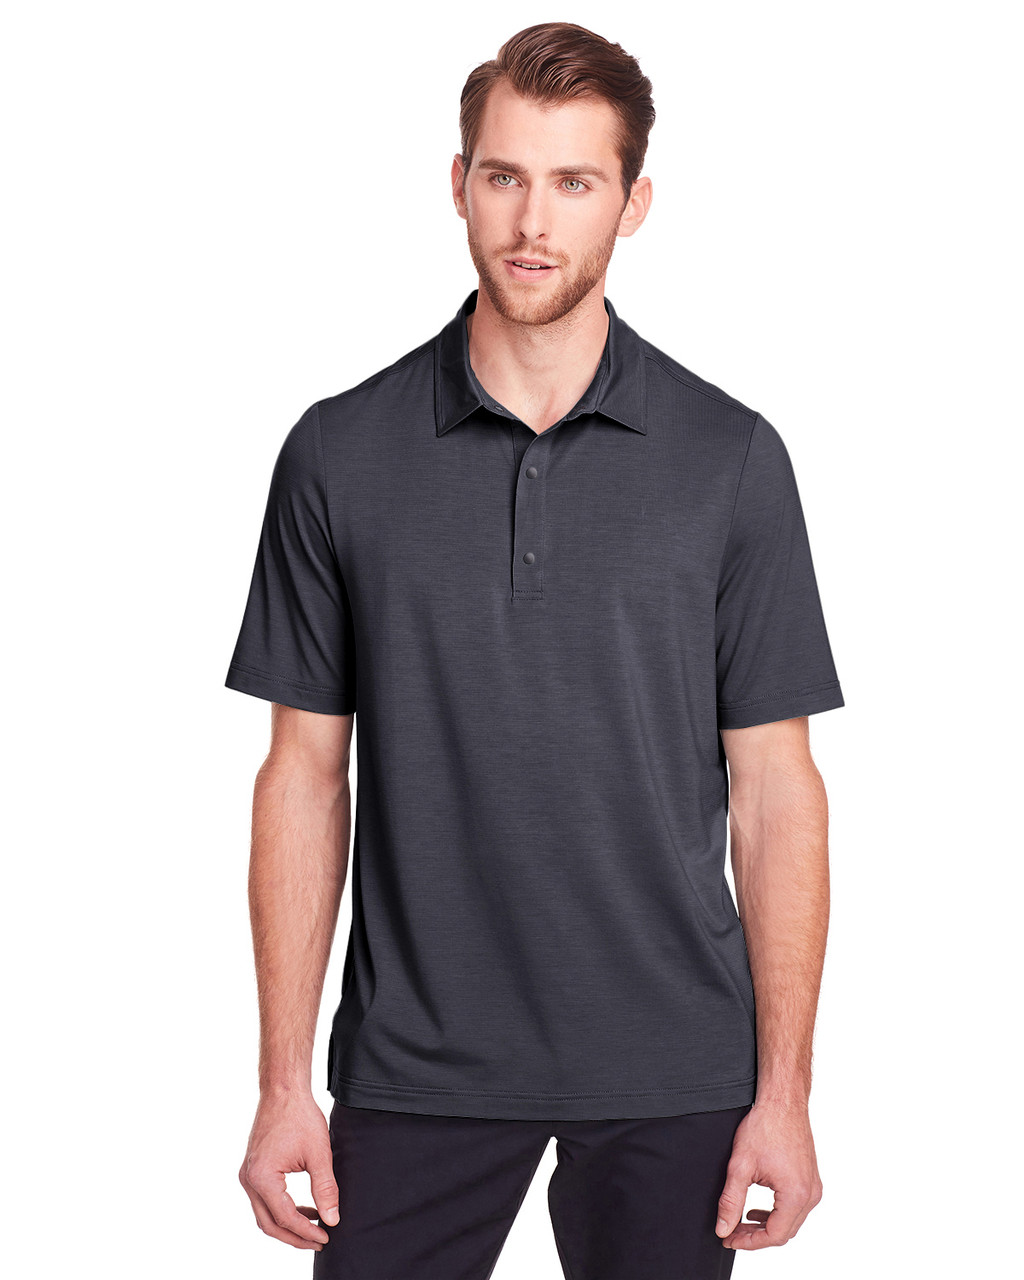 Carbon - NE100 North End Men's Jaq Snap-Up Stretch Performance Polo | BlankClothing.ca